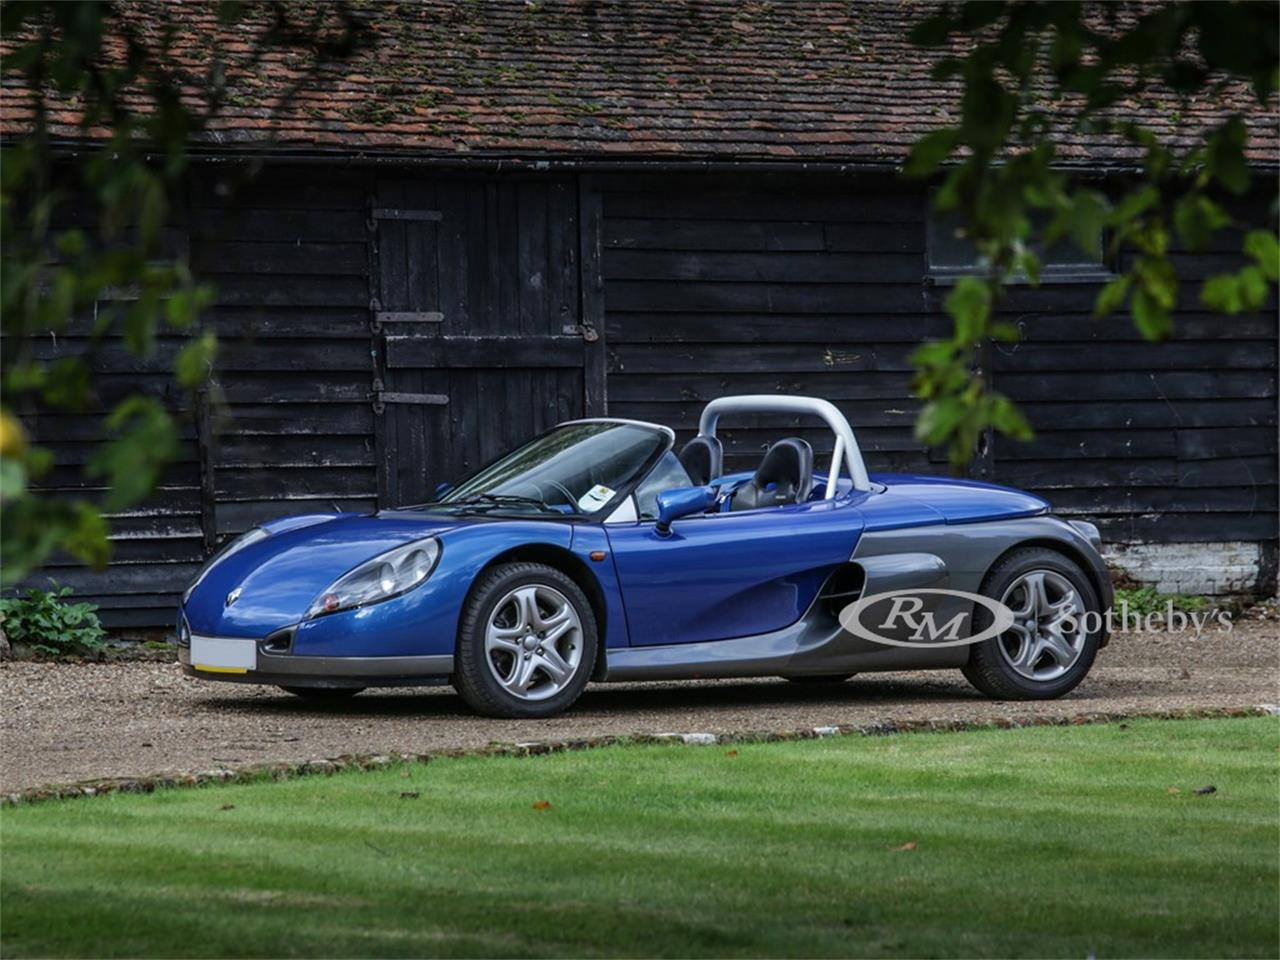 1997 Renault Sport Spider (CC-1413885) for sale in London, United Kingdom